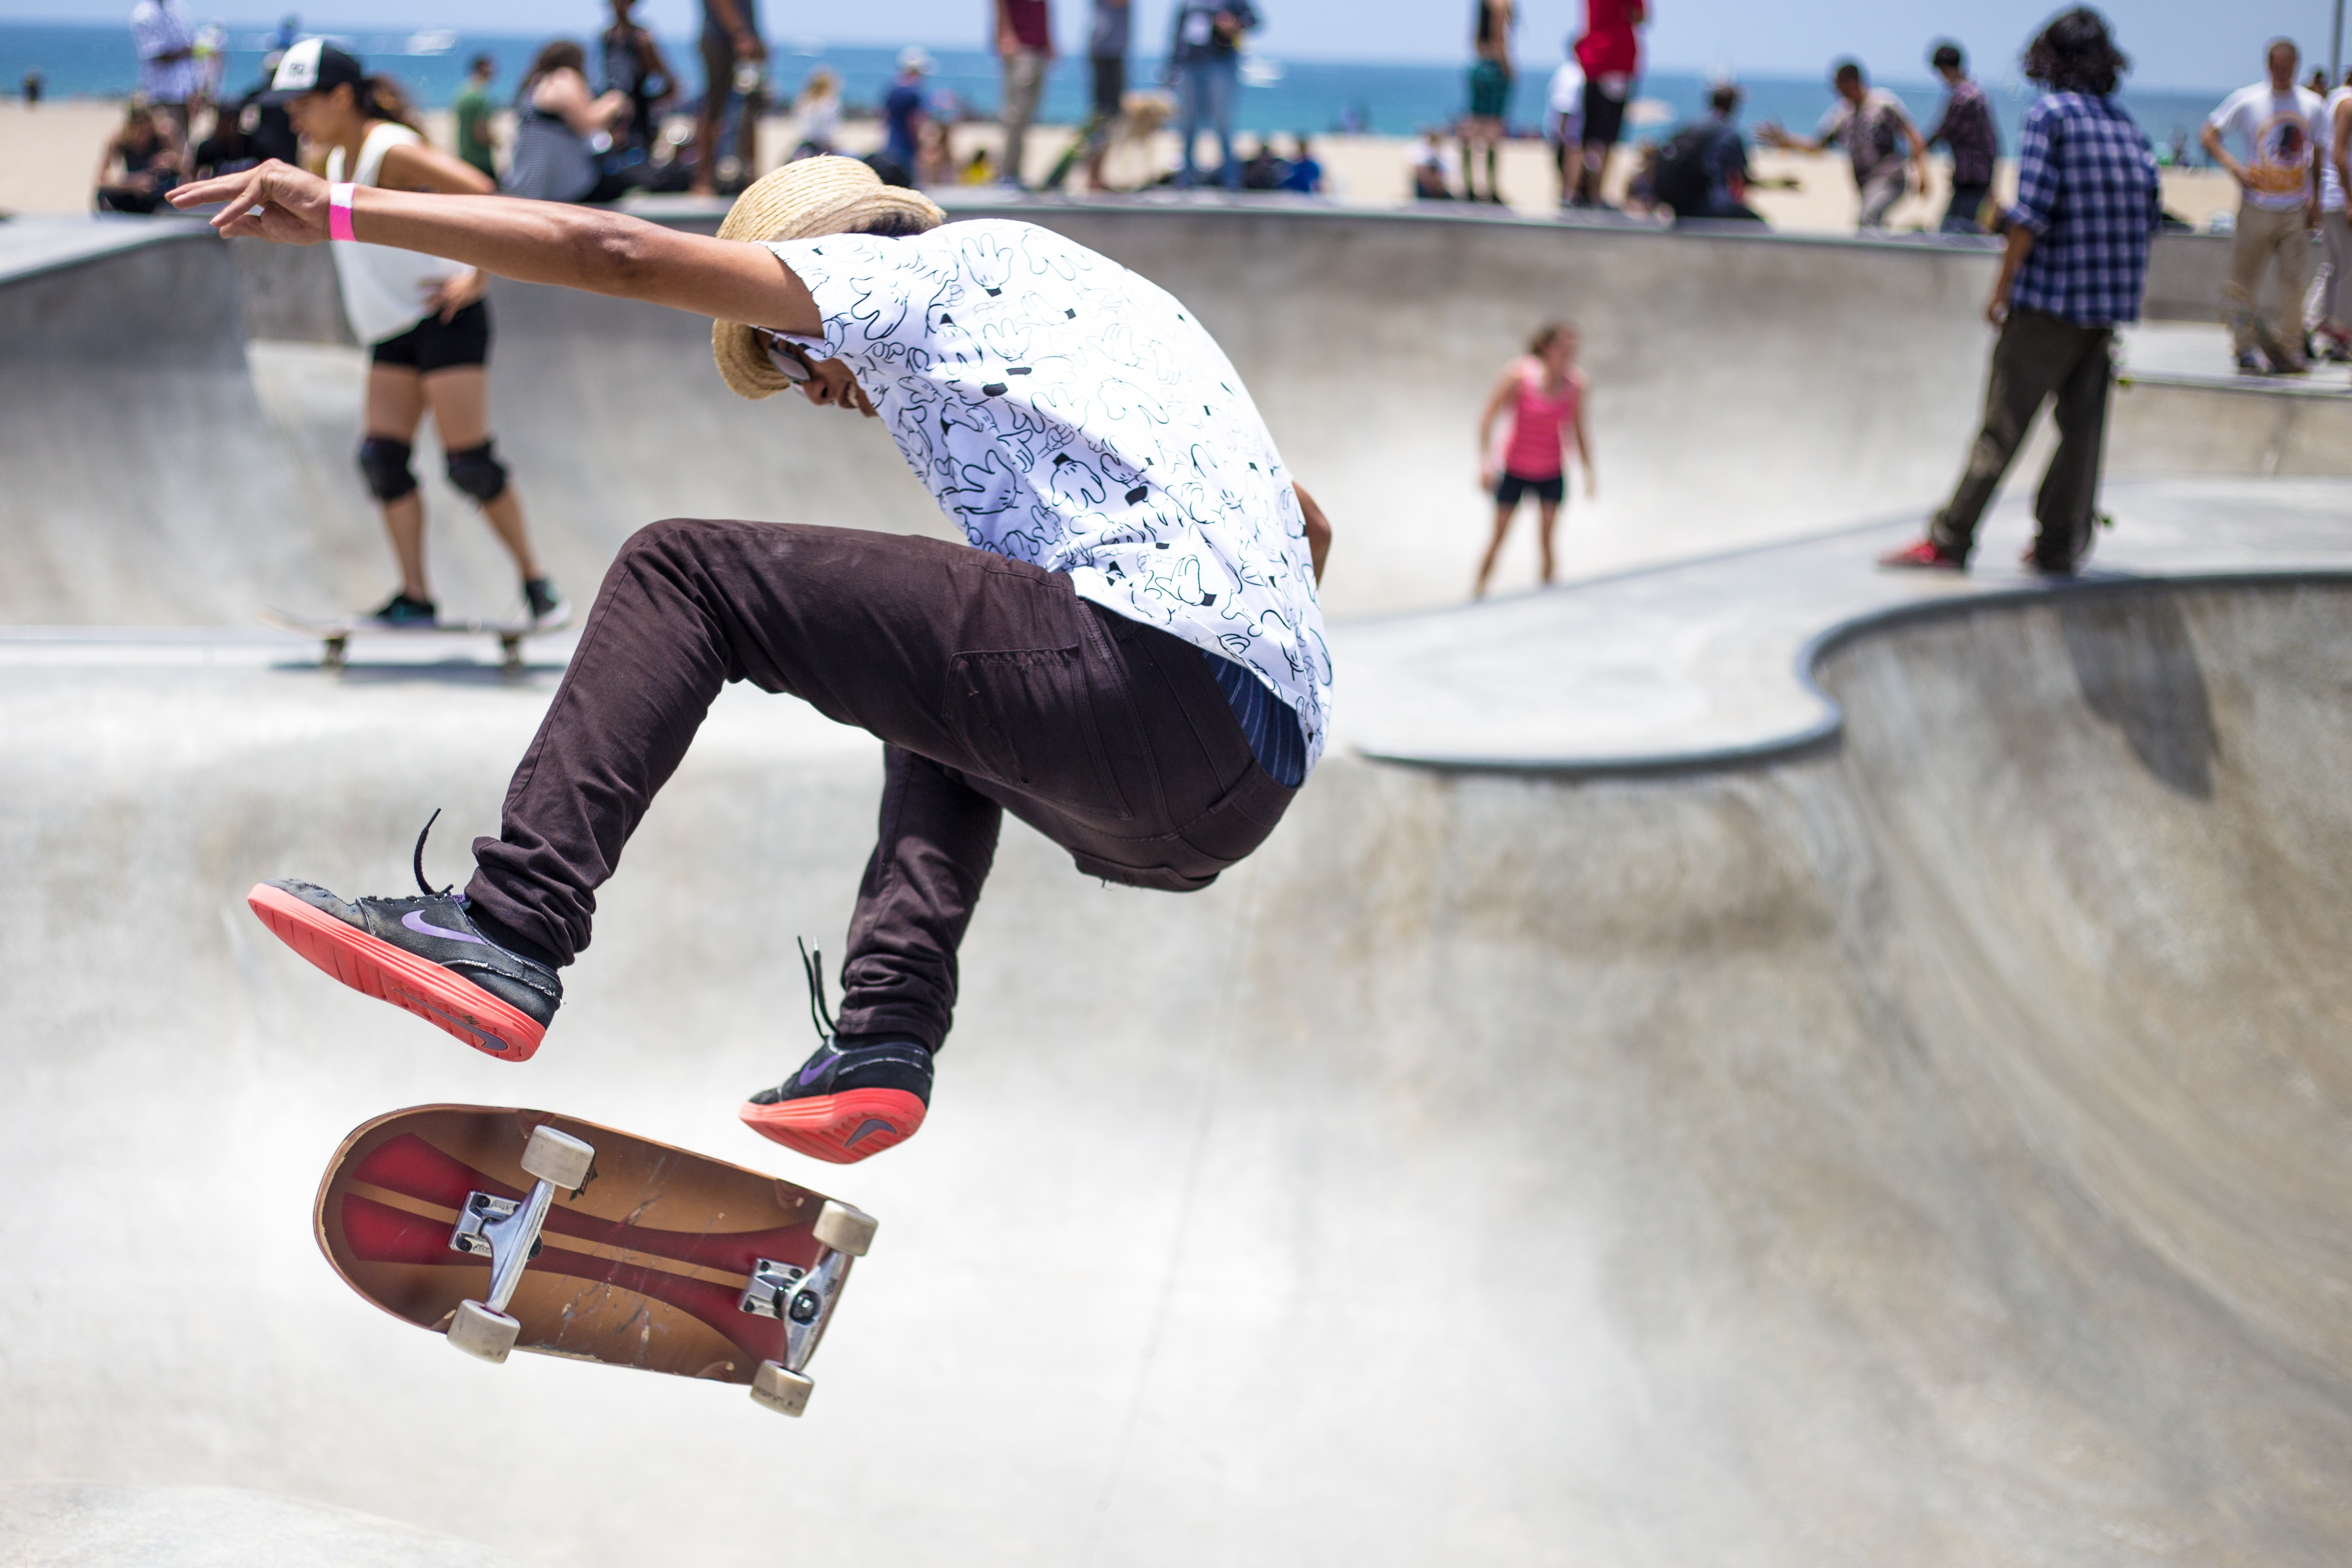 A man wearing a white shirt and hat doing tricks on a skateboard at a skatepark